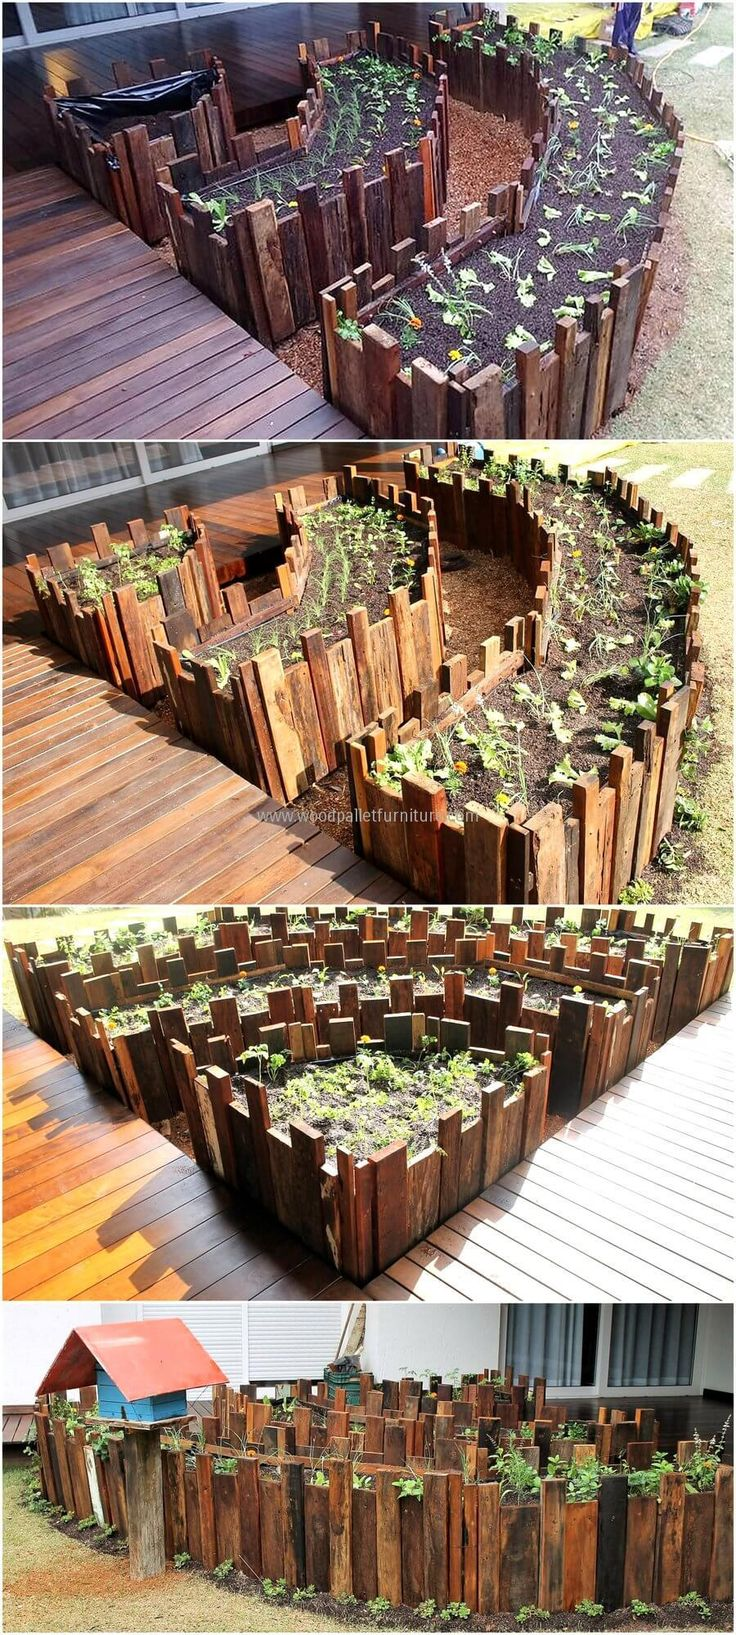 The inexpensive and economical nature of this amazing craft is another big plus that has turned this labor into fun. The art of recycling the used and retired wood pallet is gaining popularity by every passing day. Today we are going to have fun with raised garden made by using used pallet wood.